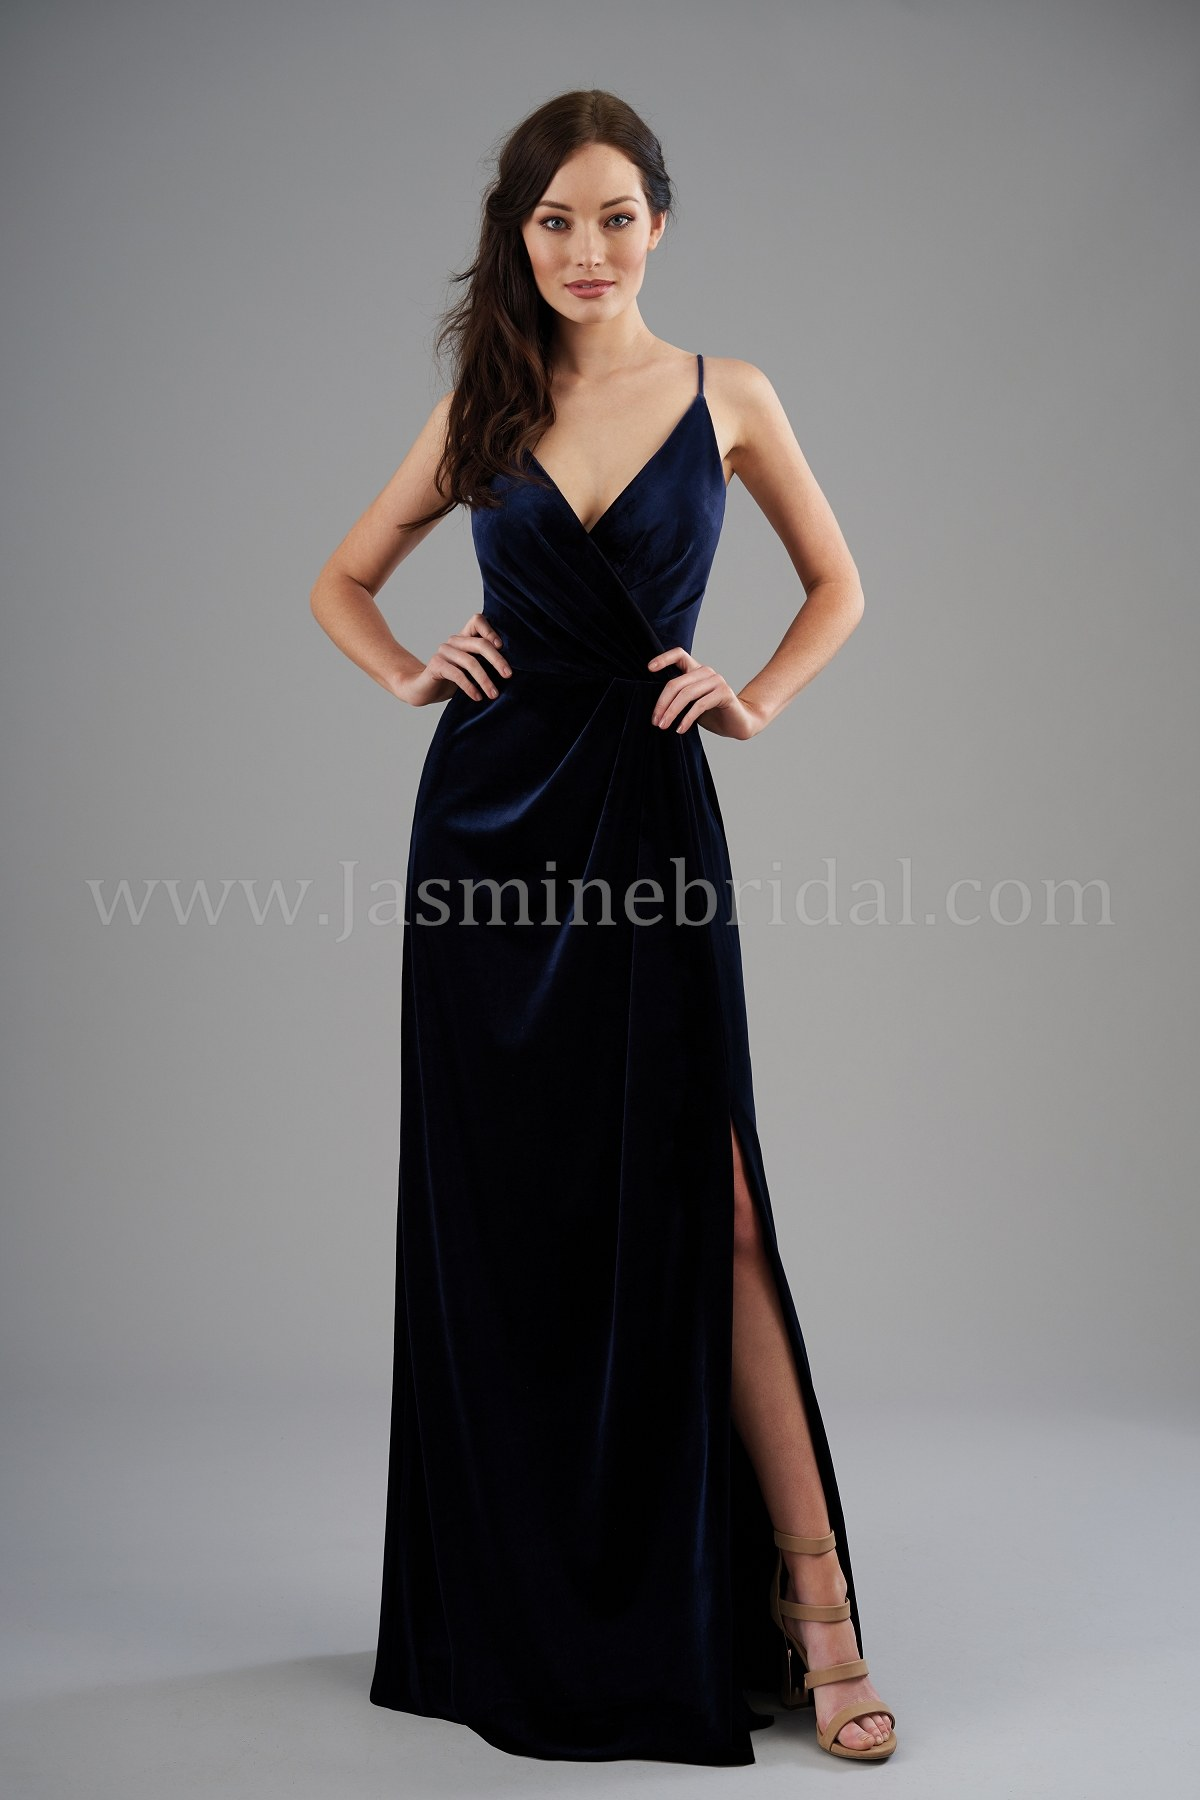 bridesmaid-dresses-B203065-F